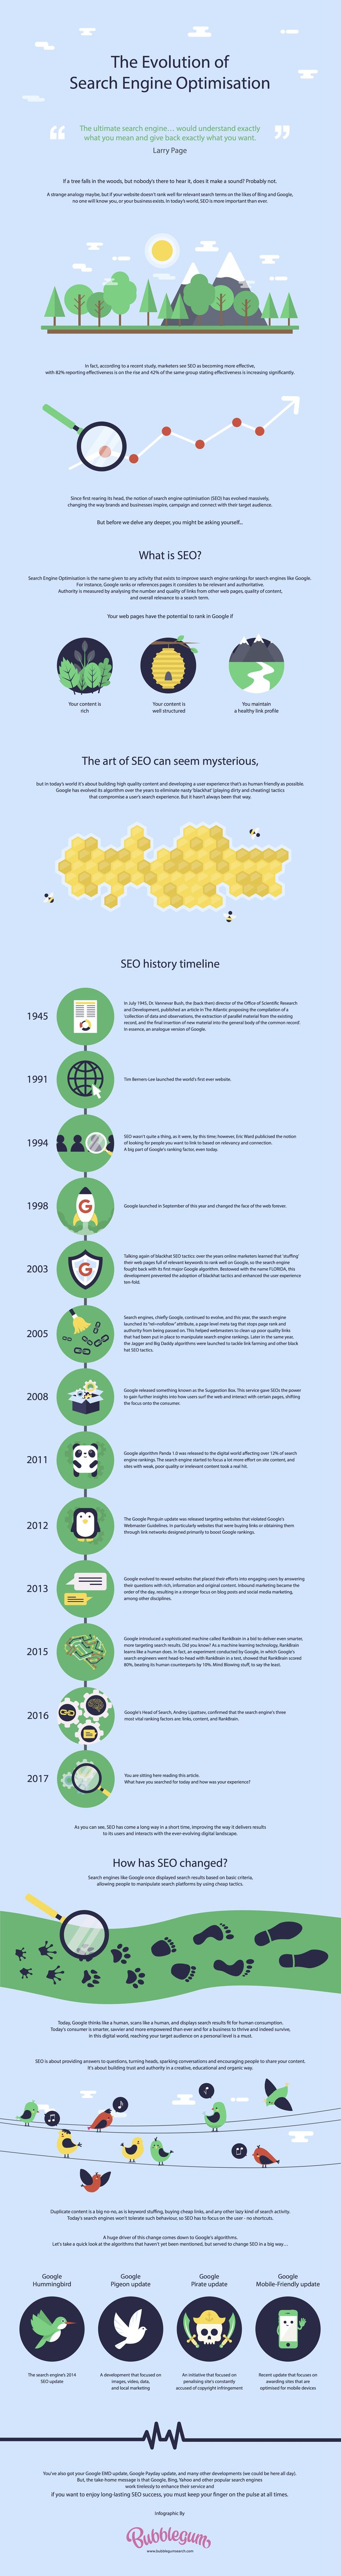 The Evolution of Search Engine Optimization #SEO